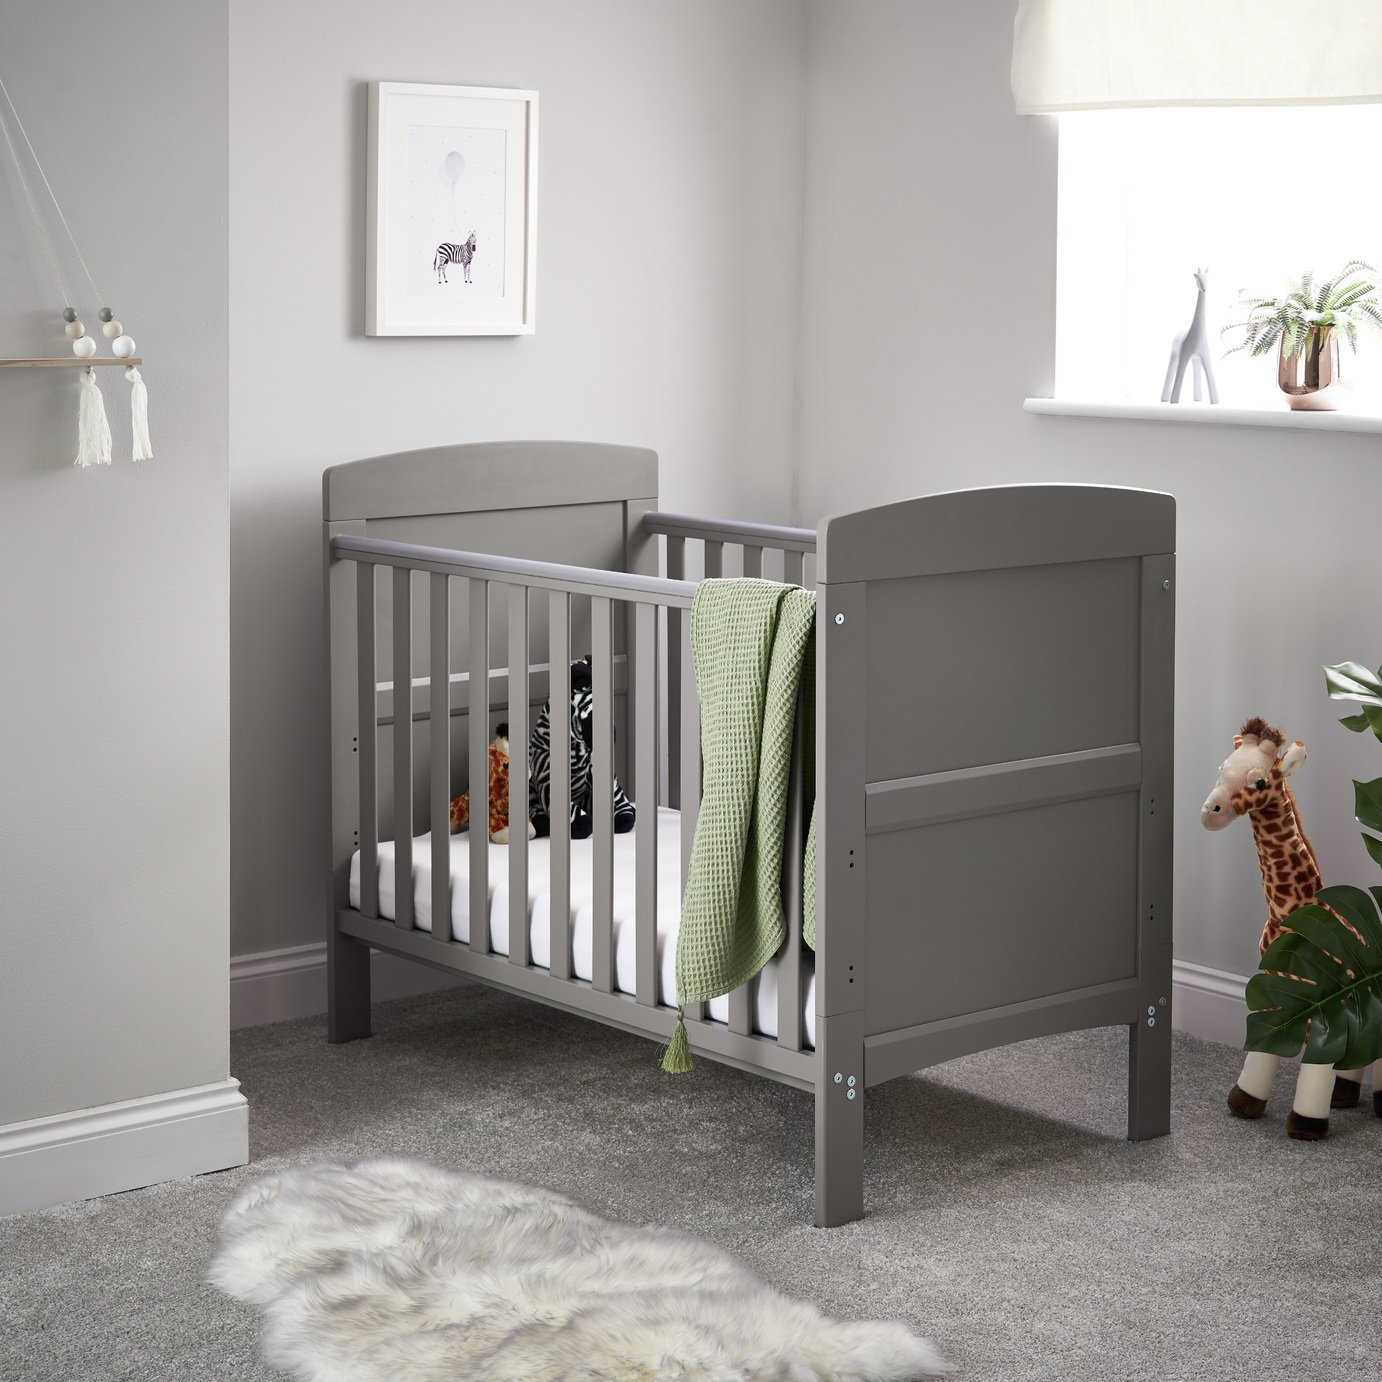 Obaby Grace Mini Baby Cot Bed - Taupe Grey